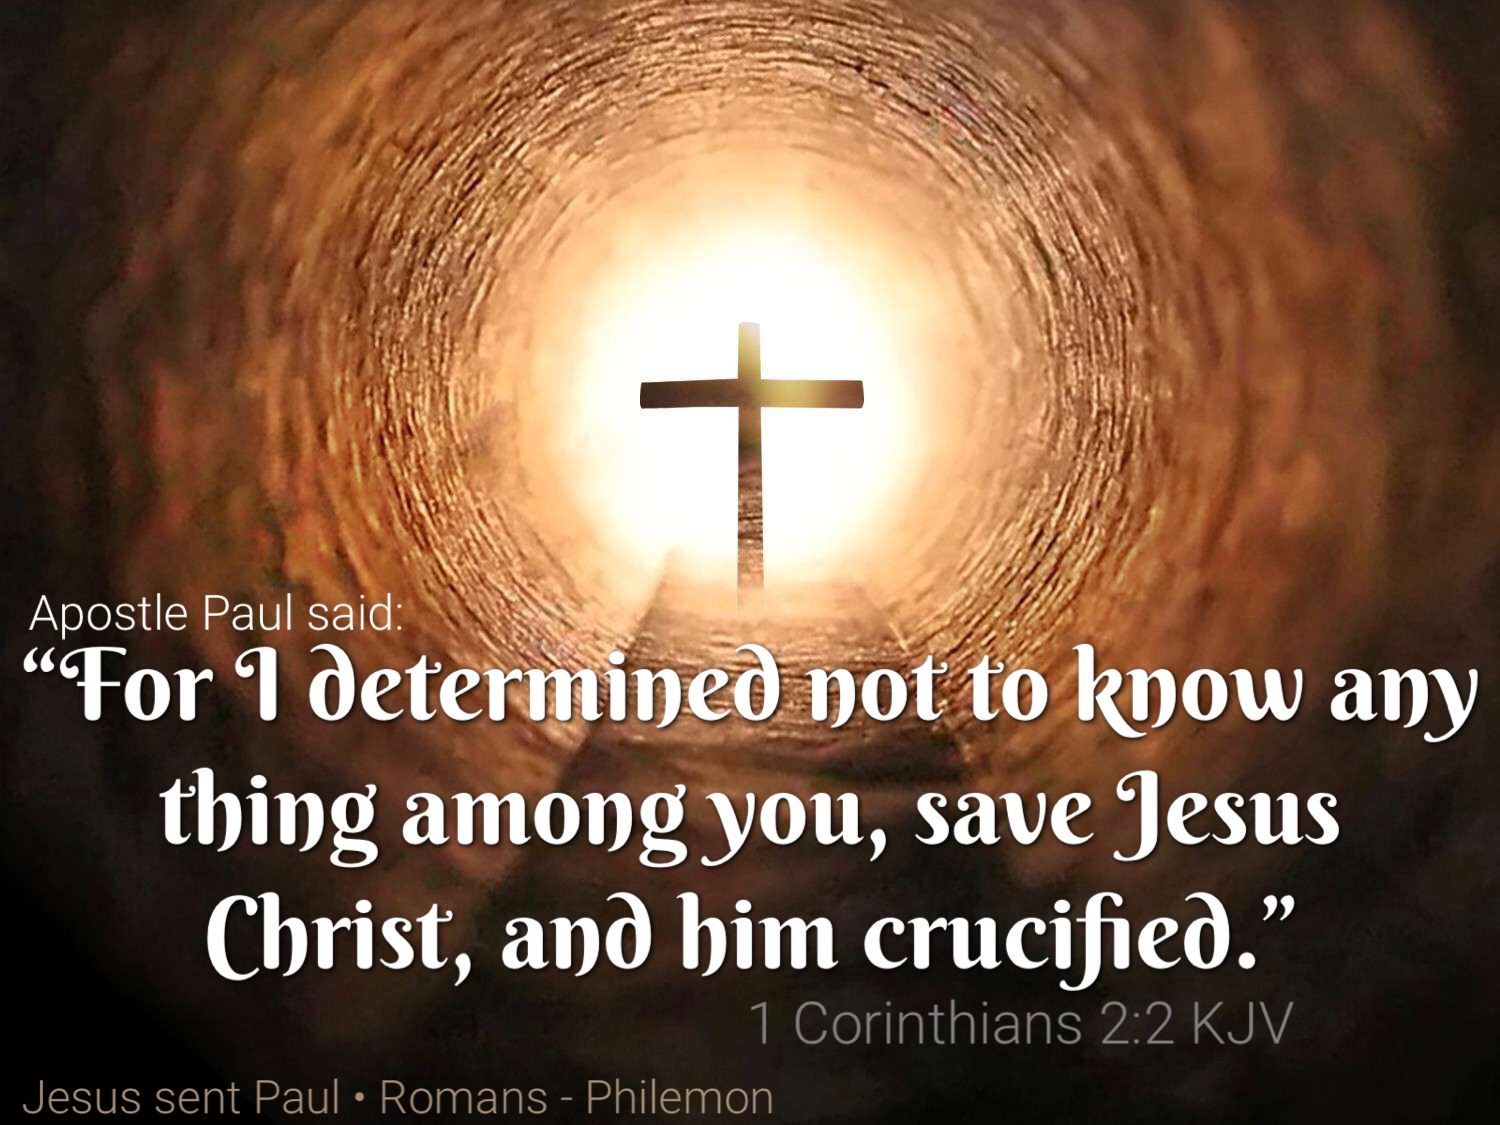 "For I determined not to know any thing among you, save Jesus Christ, and him crucified."" ‭‭1 Corinthians‬  ‭2:2‬ ‭KJV‬‬ 